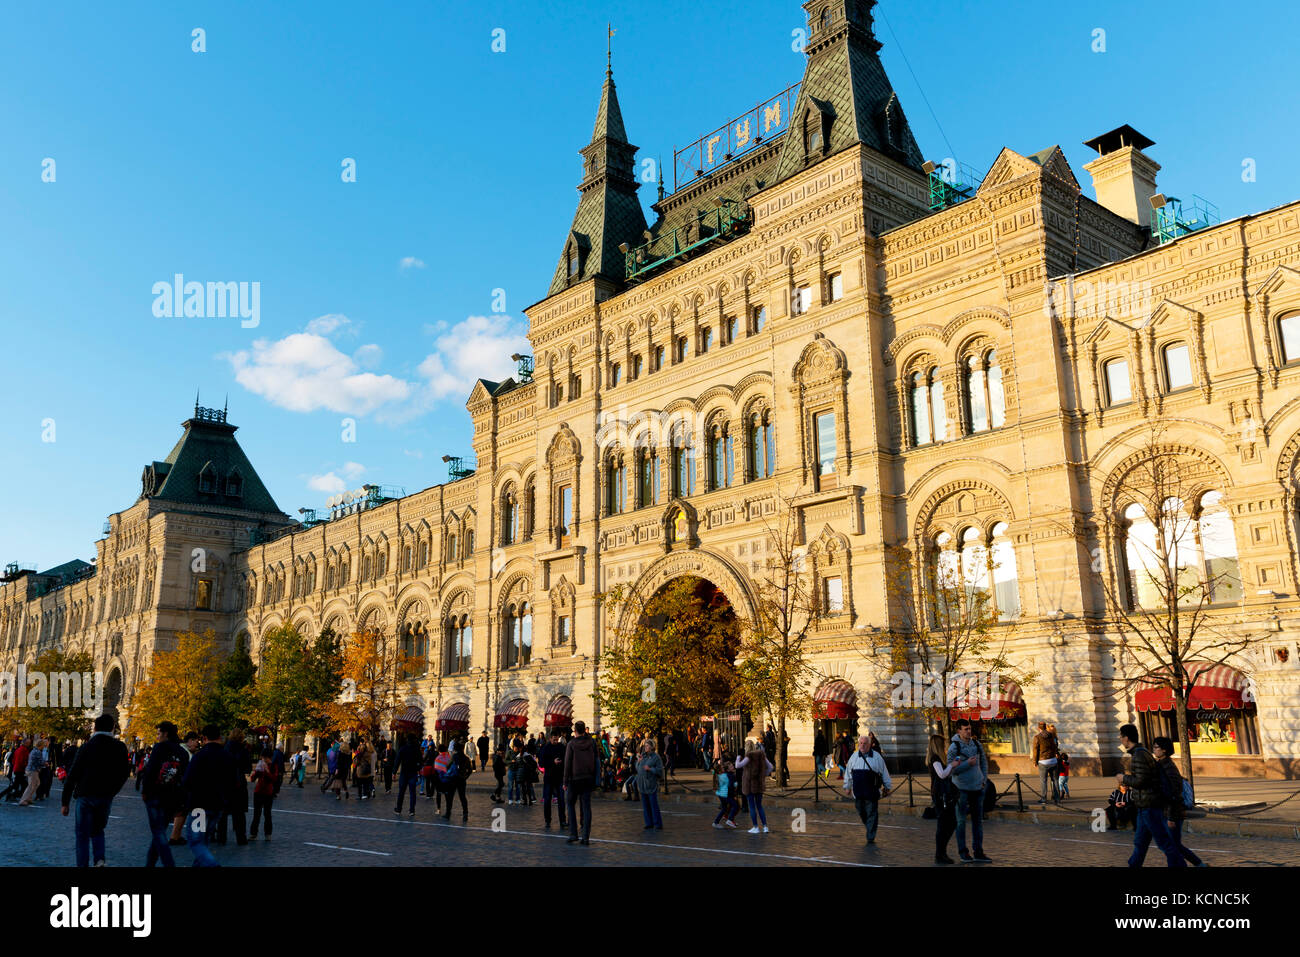 The Gum Department Store, Moscow, Russian Federation - Stock Image